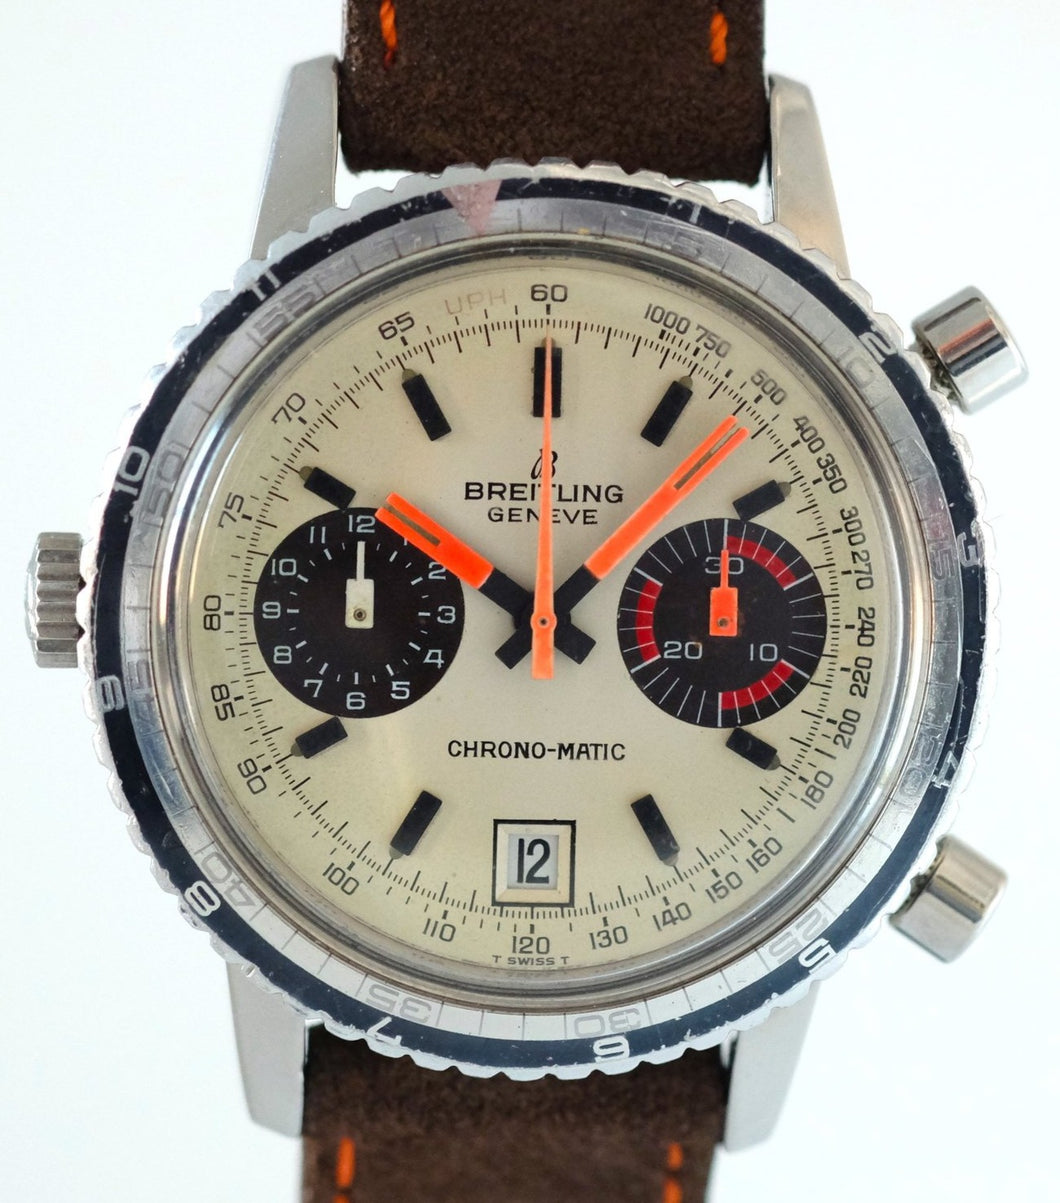 Breitling Chrono-Matic Re. 2110